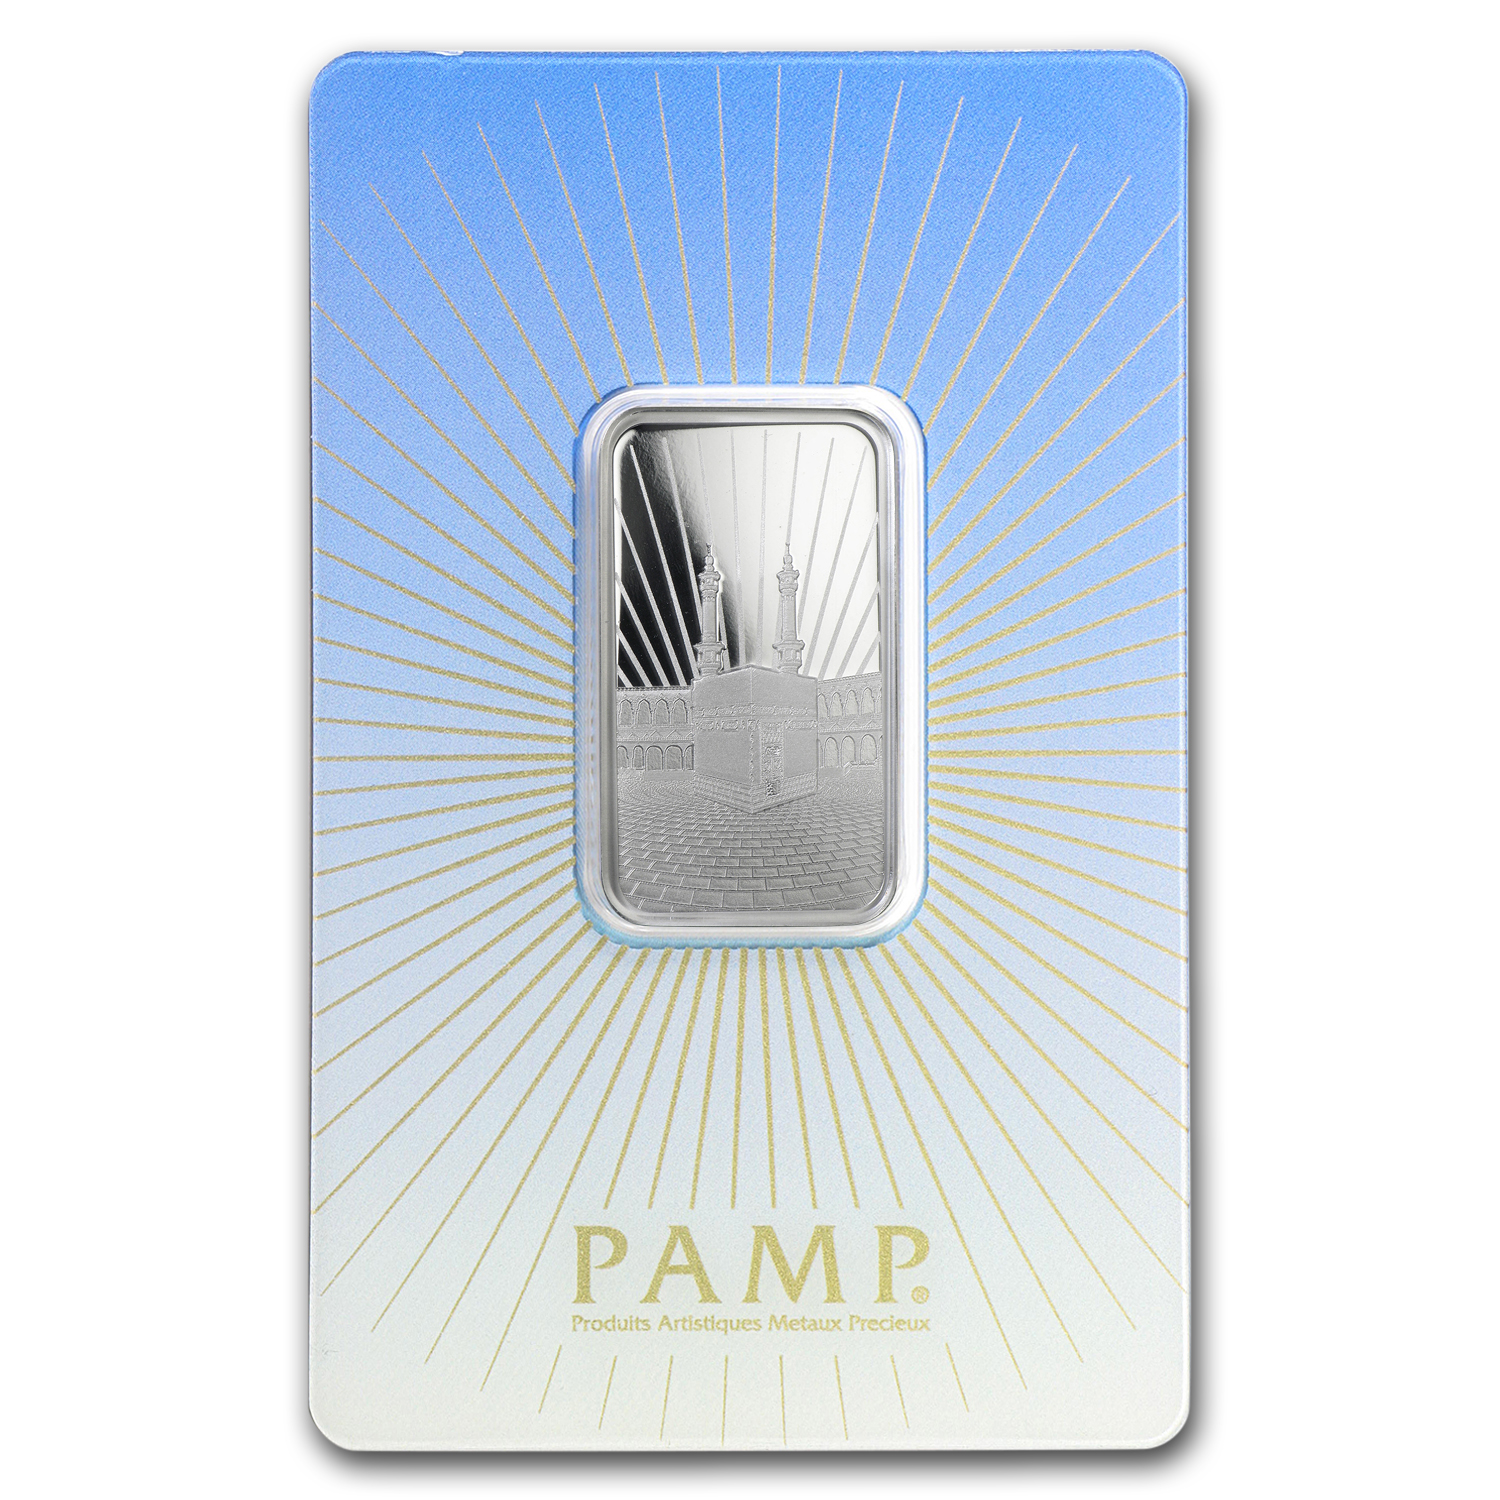 10 g Silver Bar - PAMP Suisse Religious Series (Ka' Bah, Mecca)